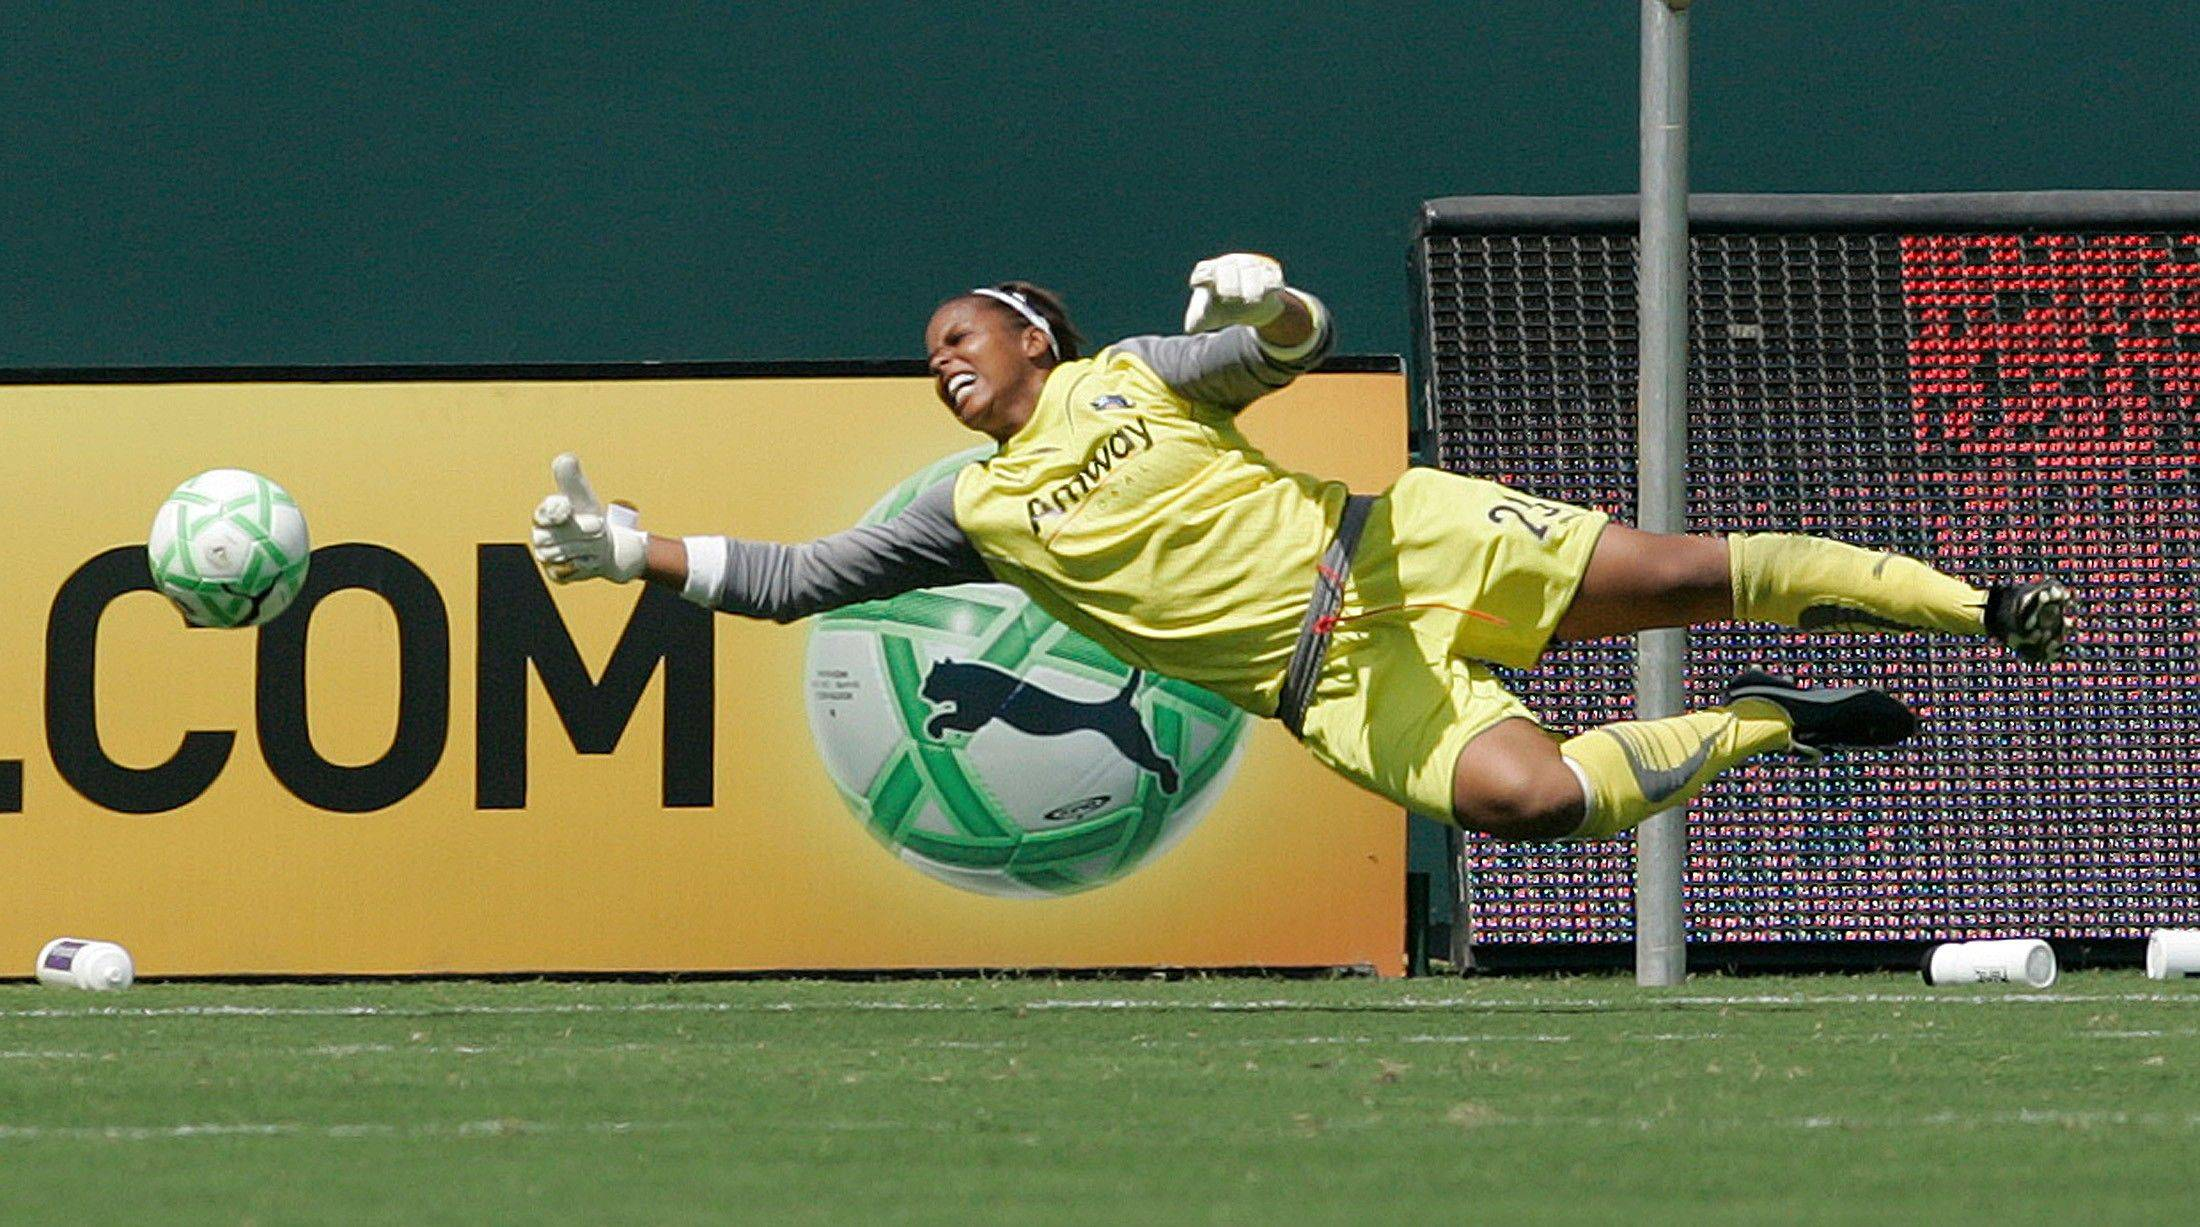 Associated Press file/2009Goalie Karina LeBlanc, then with the Los Angeles Sol, dives for the ball in the 2009 WPS Championship soccer game at the Home Depot Center. LeBlanc, the Canadian National Team goalier who played for the Philadelphia Independence of the WPS this past season, was acquired Tuesday by the Chicago Red Stars via trade.